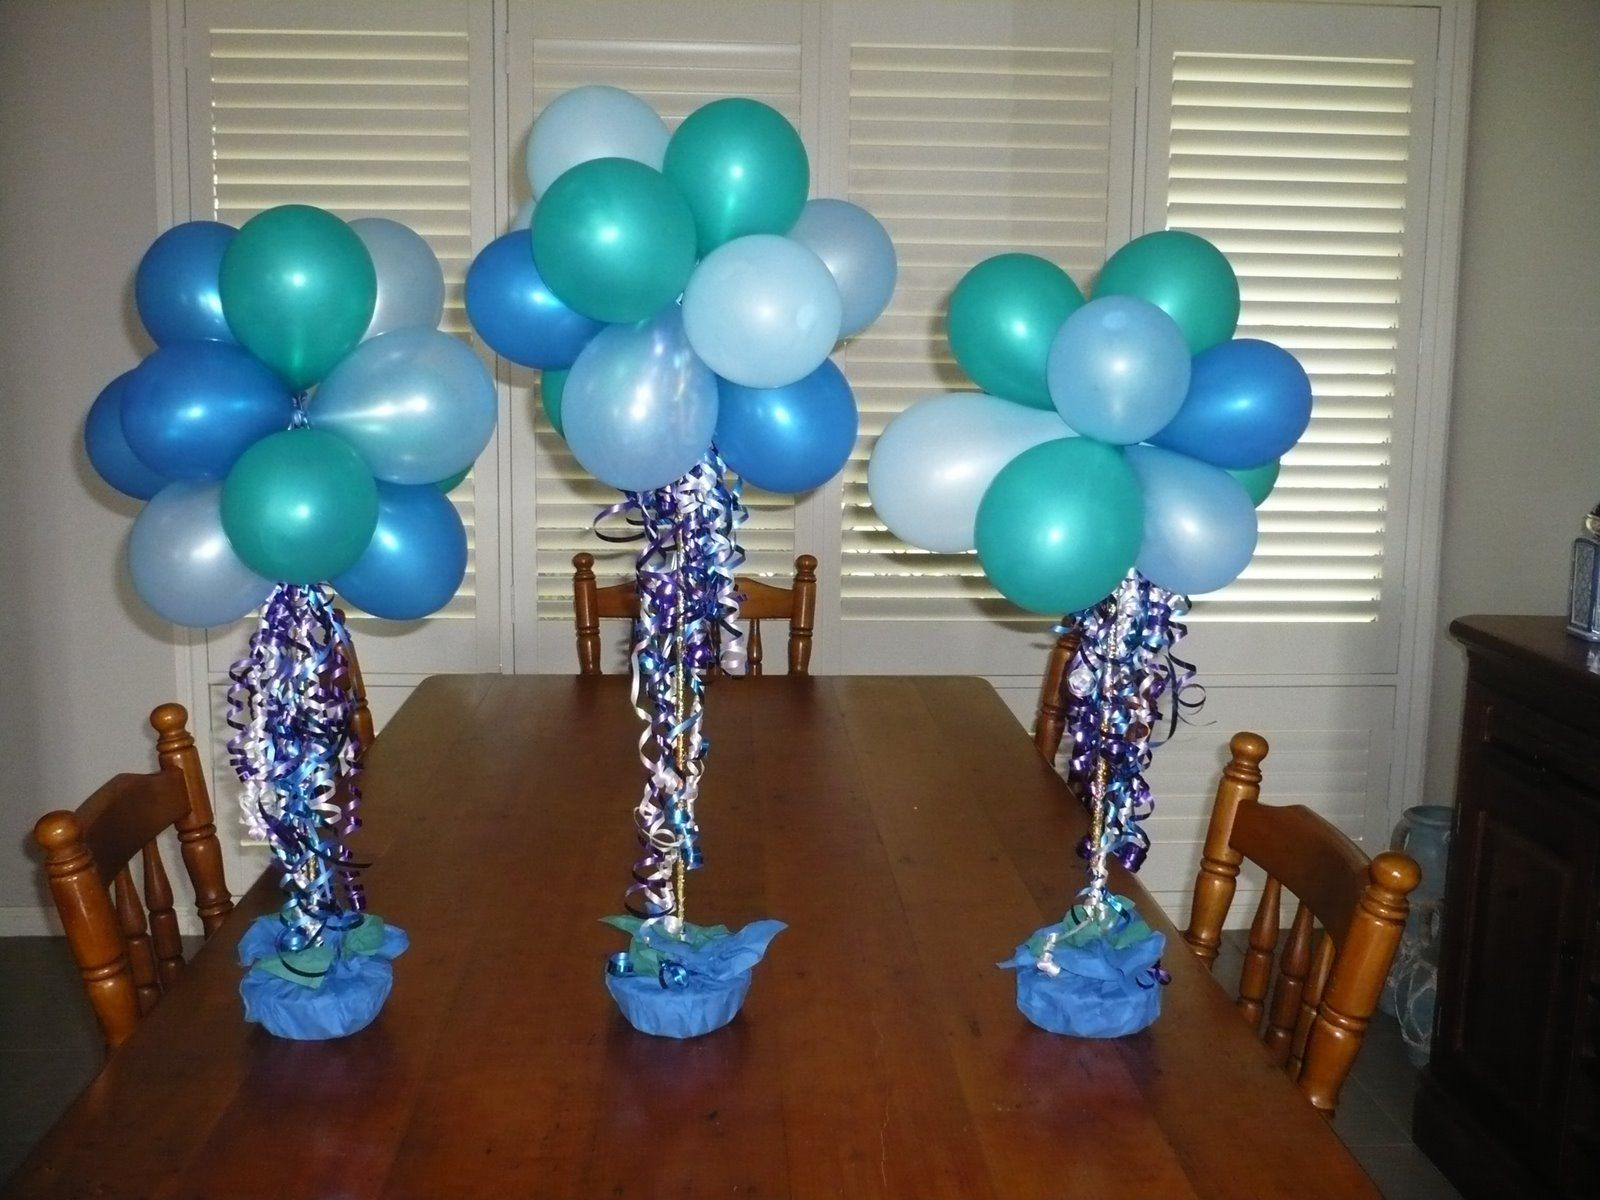 Birthday table decorations for men - Ideas To Make 90th Birthday Table Decorations Google Search